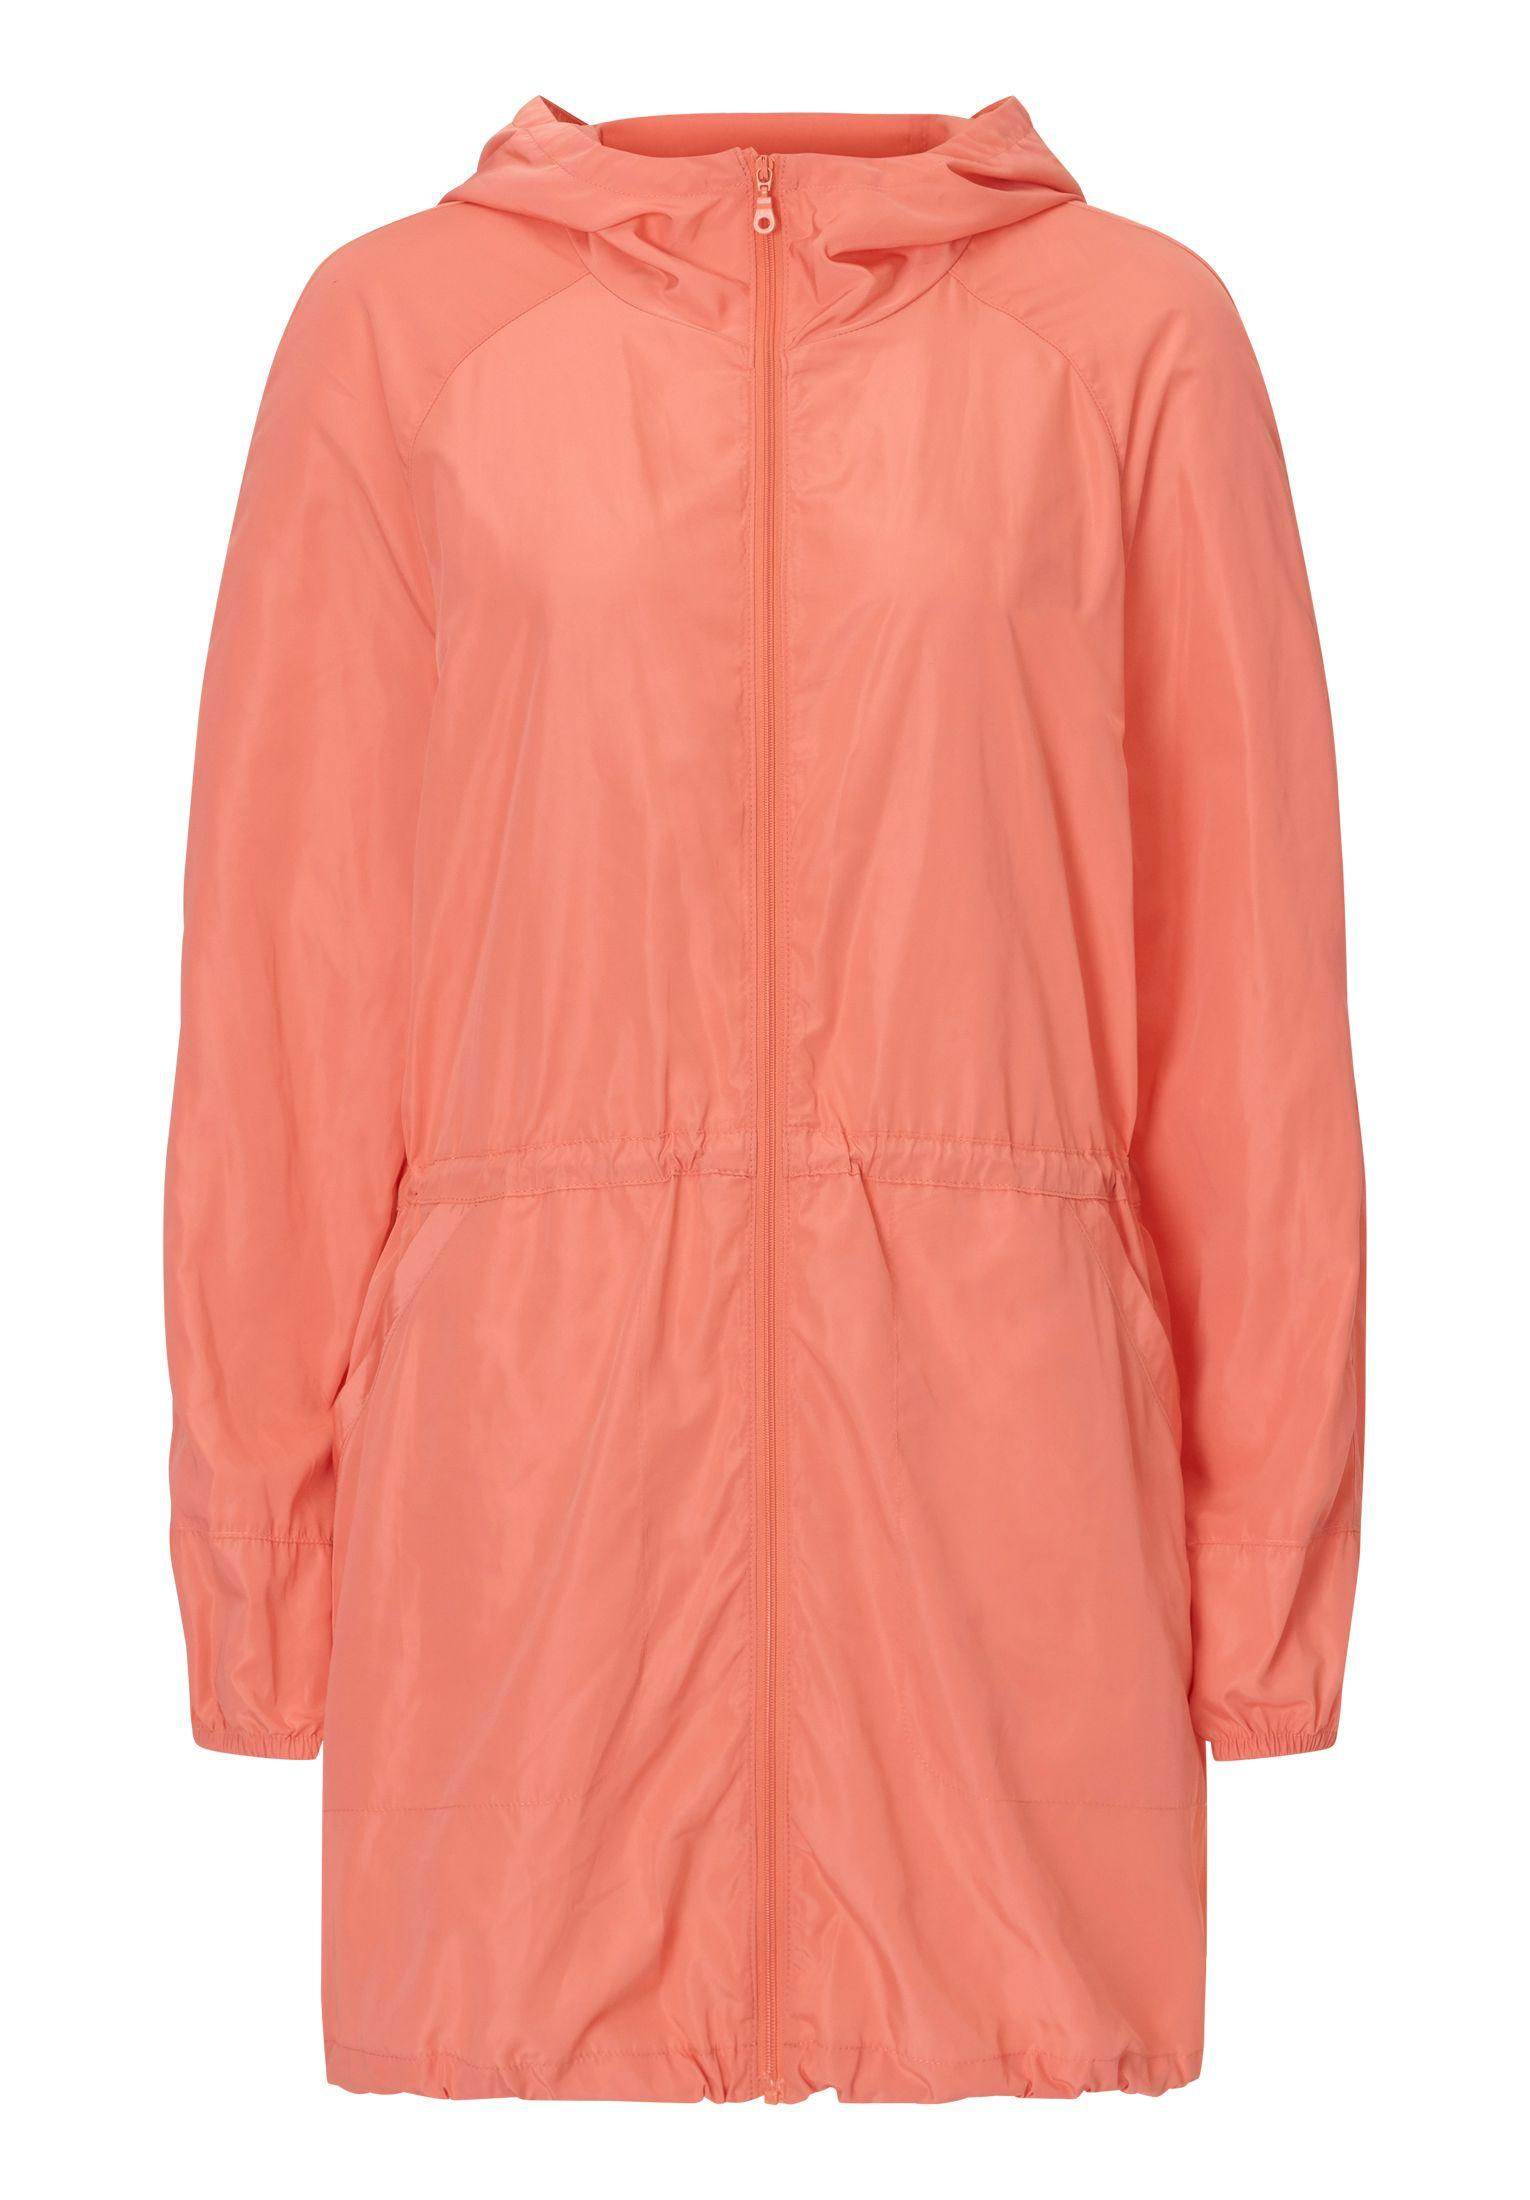 betty barclay lightweight parka in pink lyst. Black Bedroom Furniture Sets. Home Design Ideas